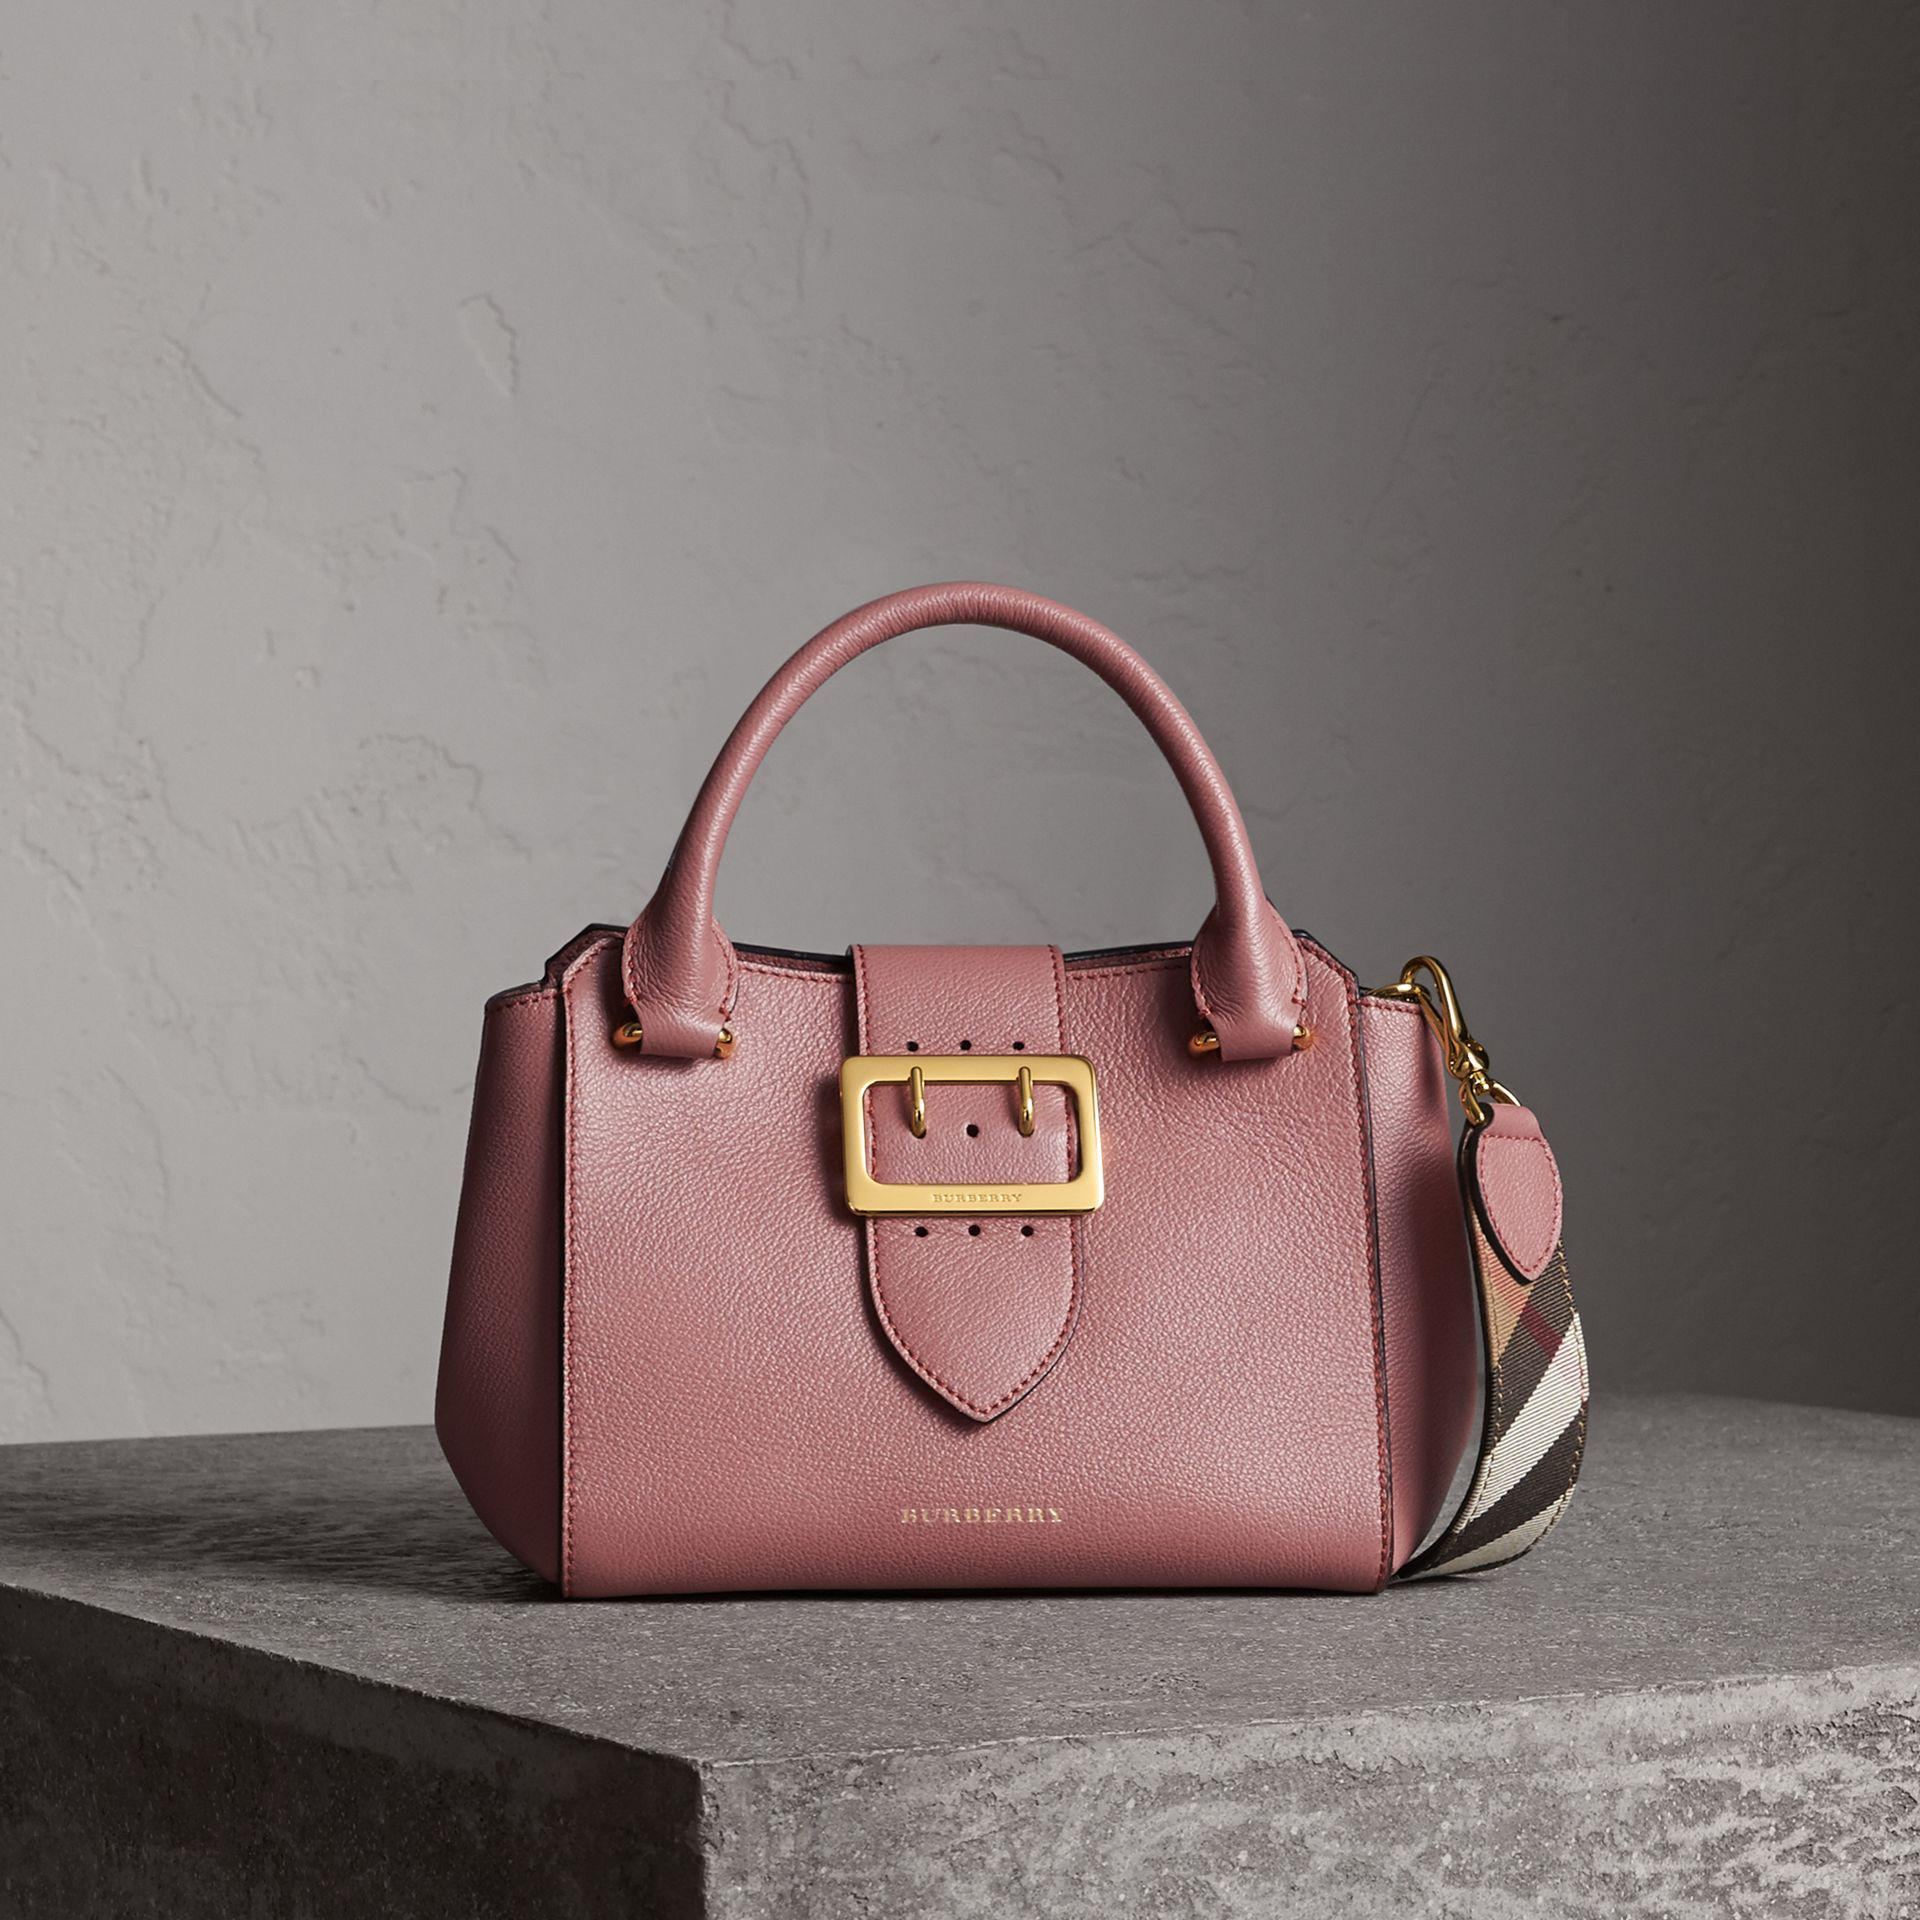 7f2a92878718 Burberry The Small Buckle Tote In Grainy Leather Dusty Pink in Pink ...